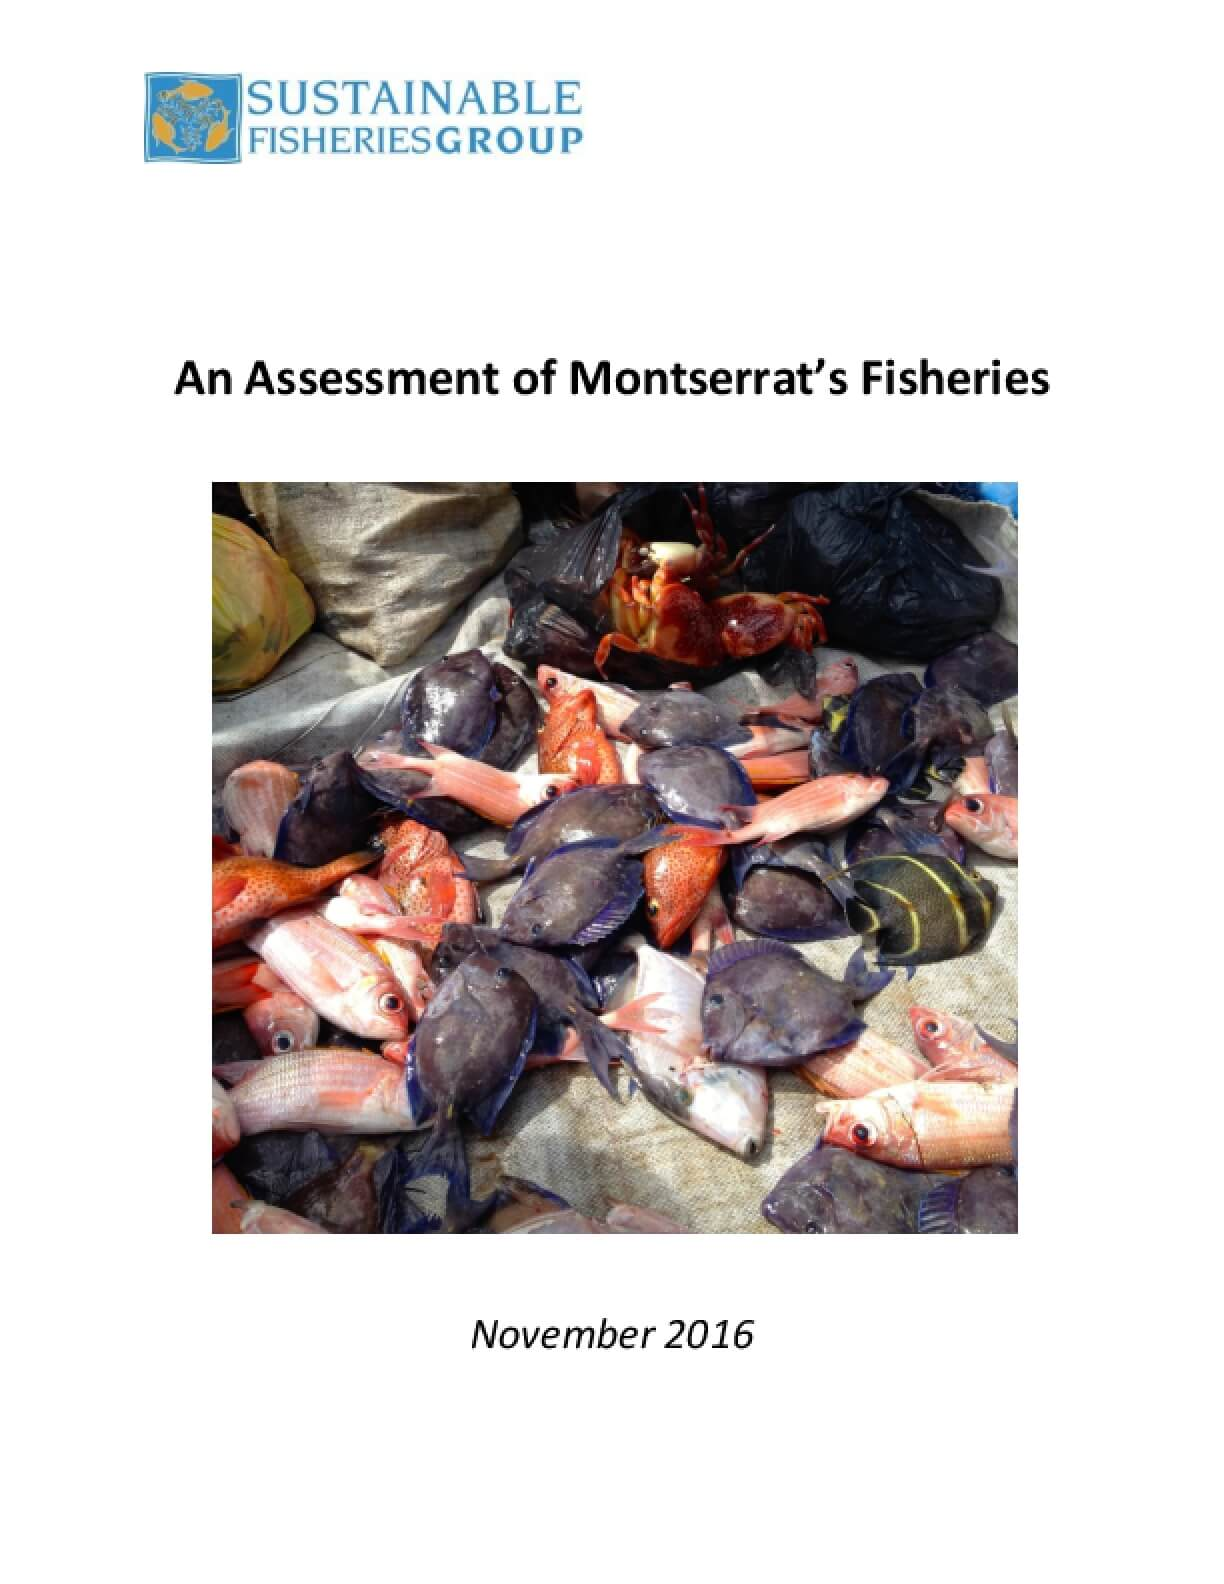 An Assessment of Montserrat's Fisheries